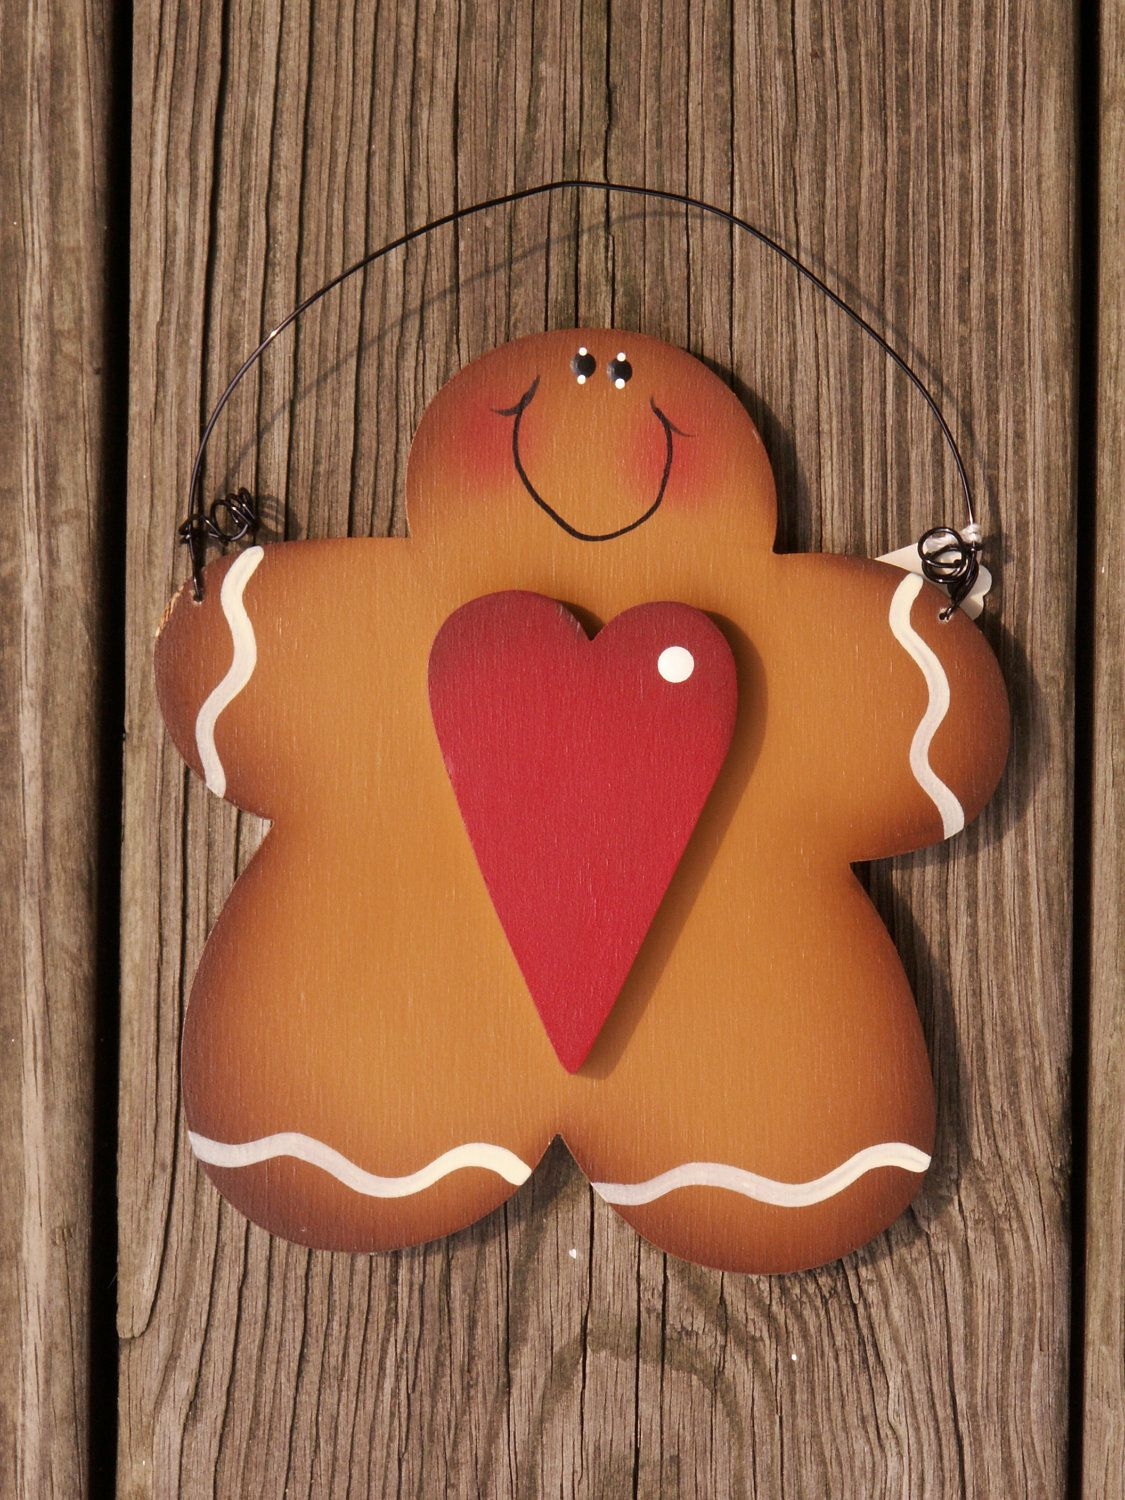 Hand Painted Gingerbread Man With Heart Wood Ornament 10 00 Via Etsy Soooo Cute Gingerbread Crafts Christmas Wood Gingerbread Christmas Decor